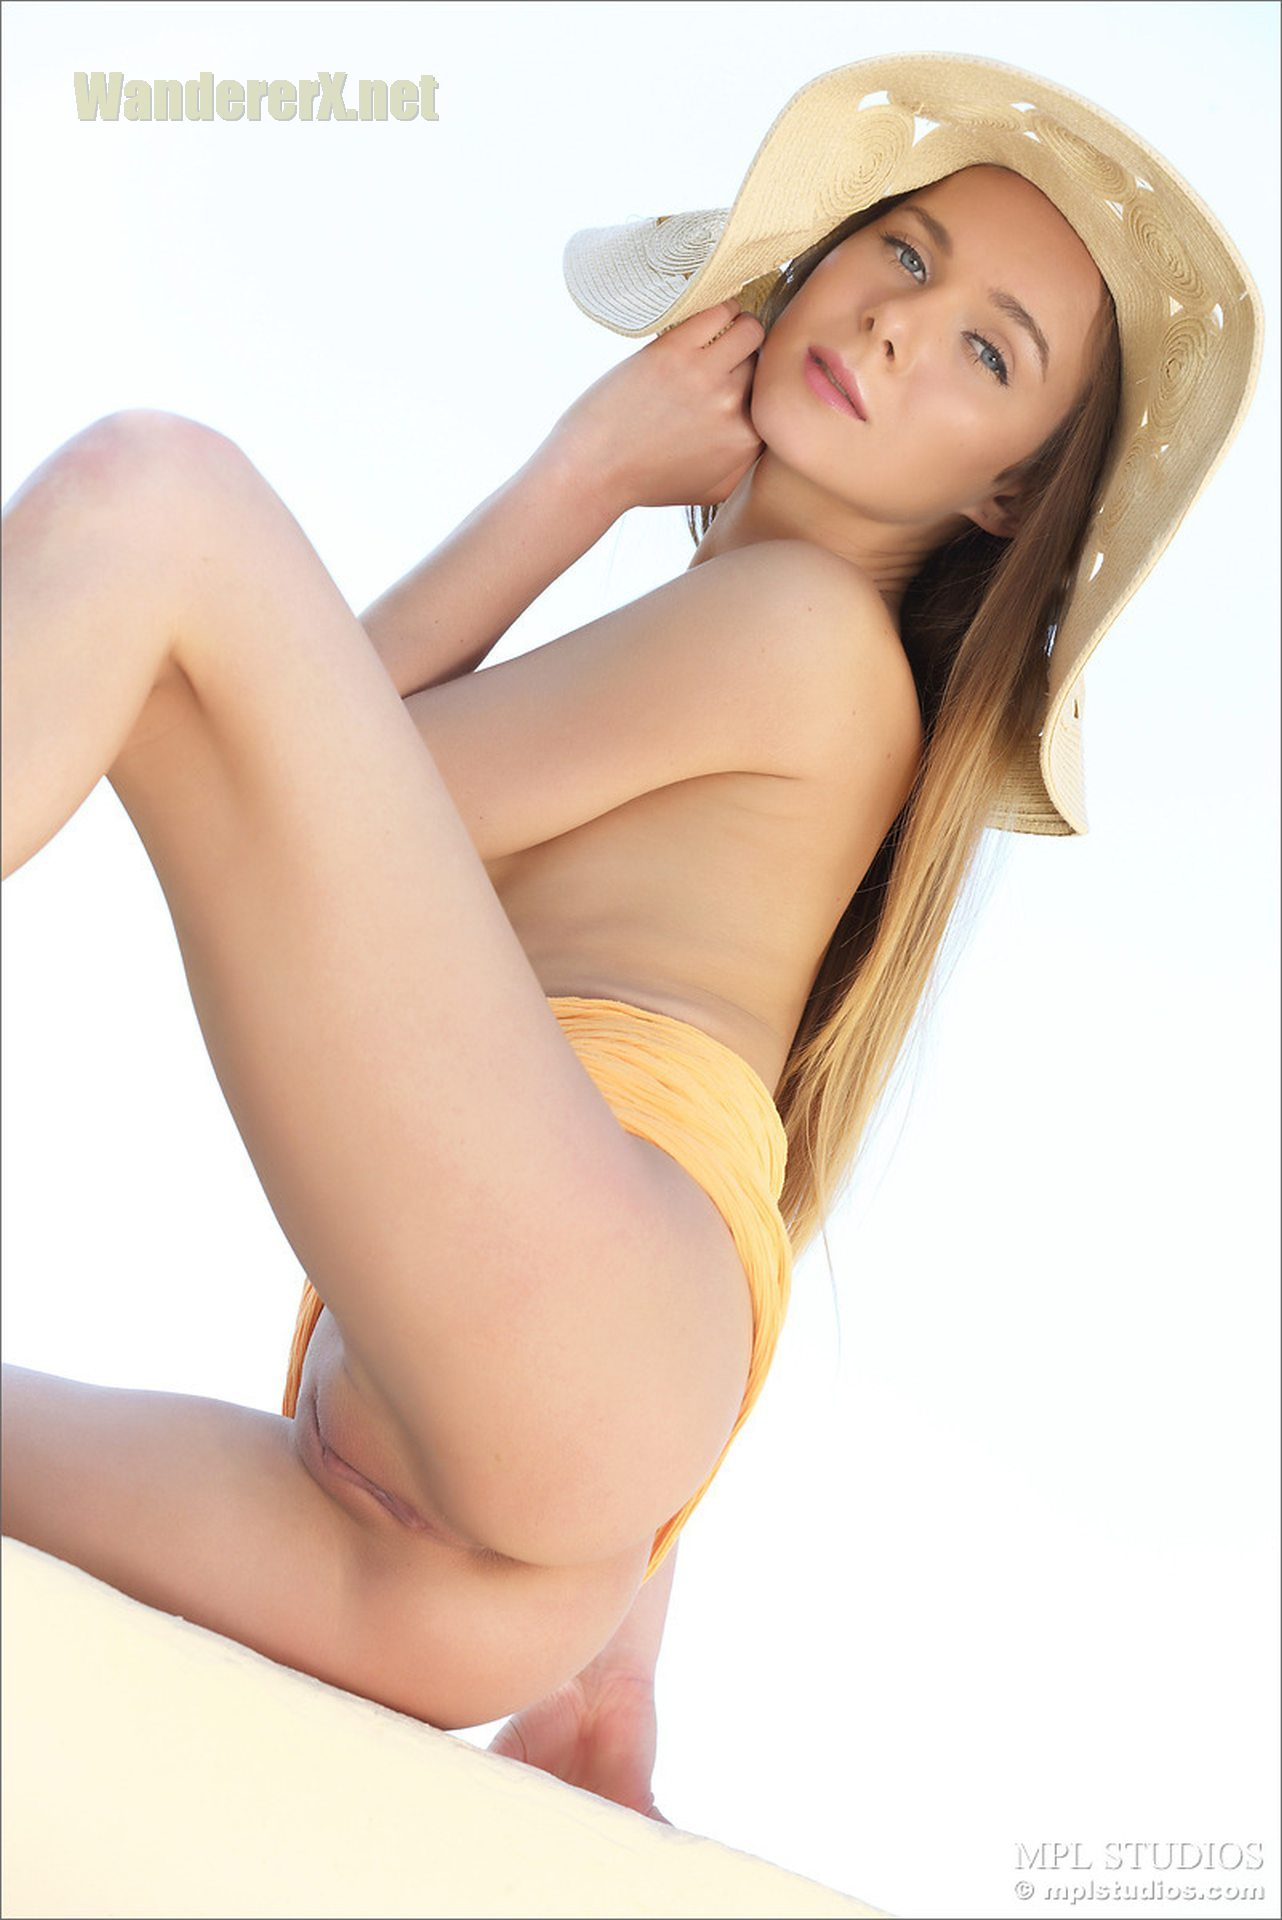 anna dating site